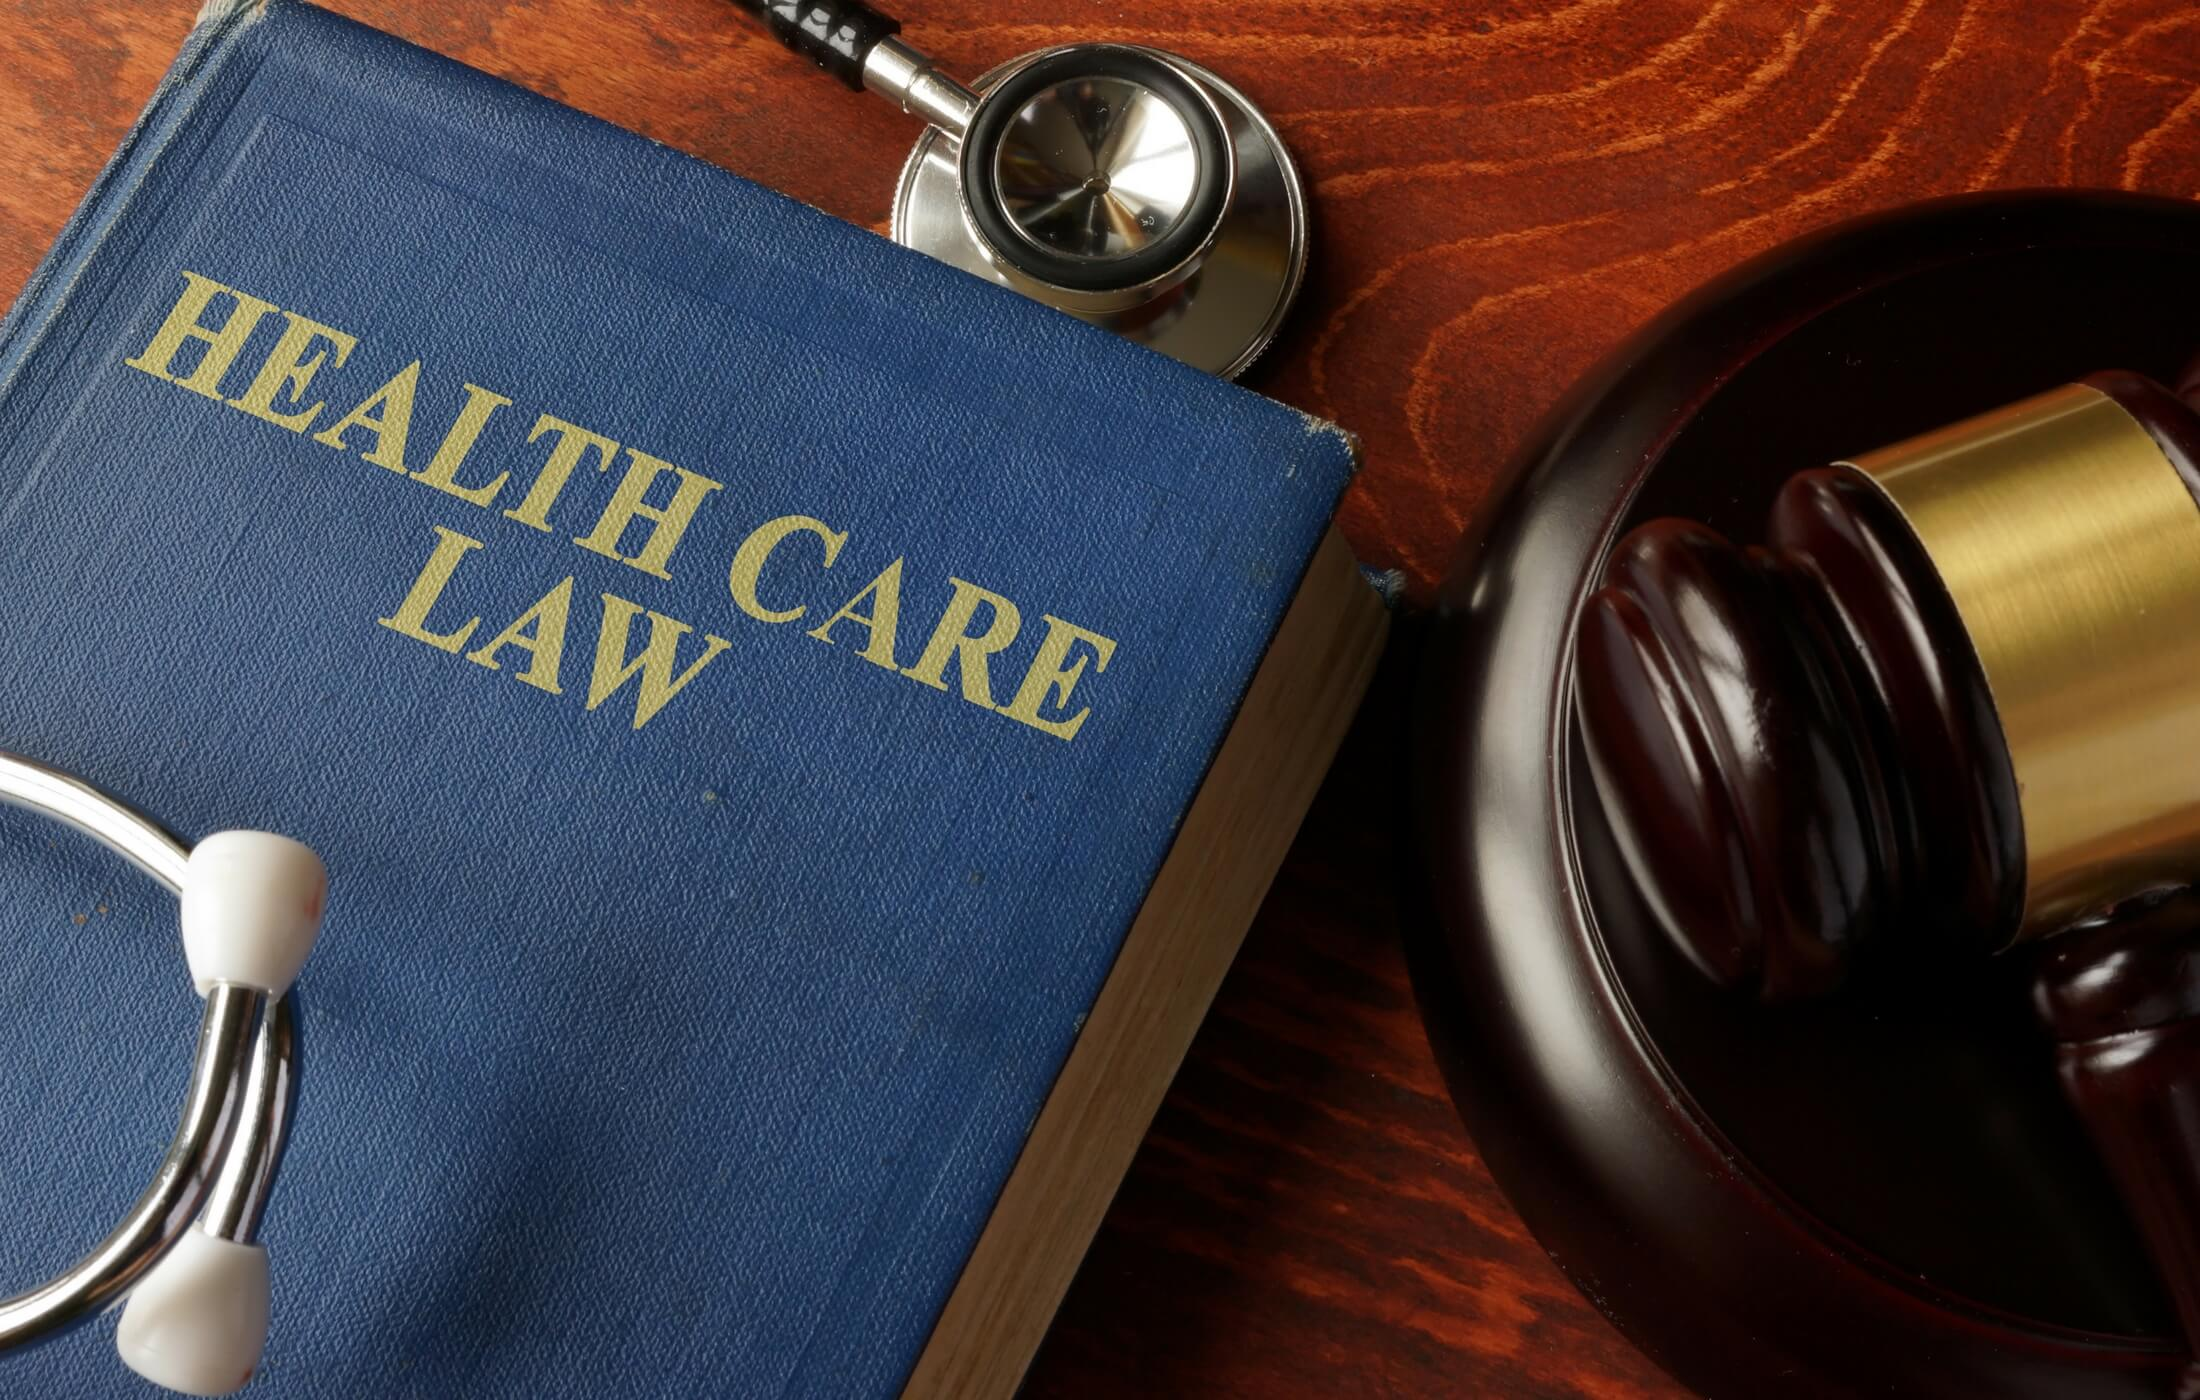 Medical Billing with an In-House Law Firm